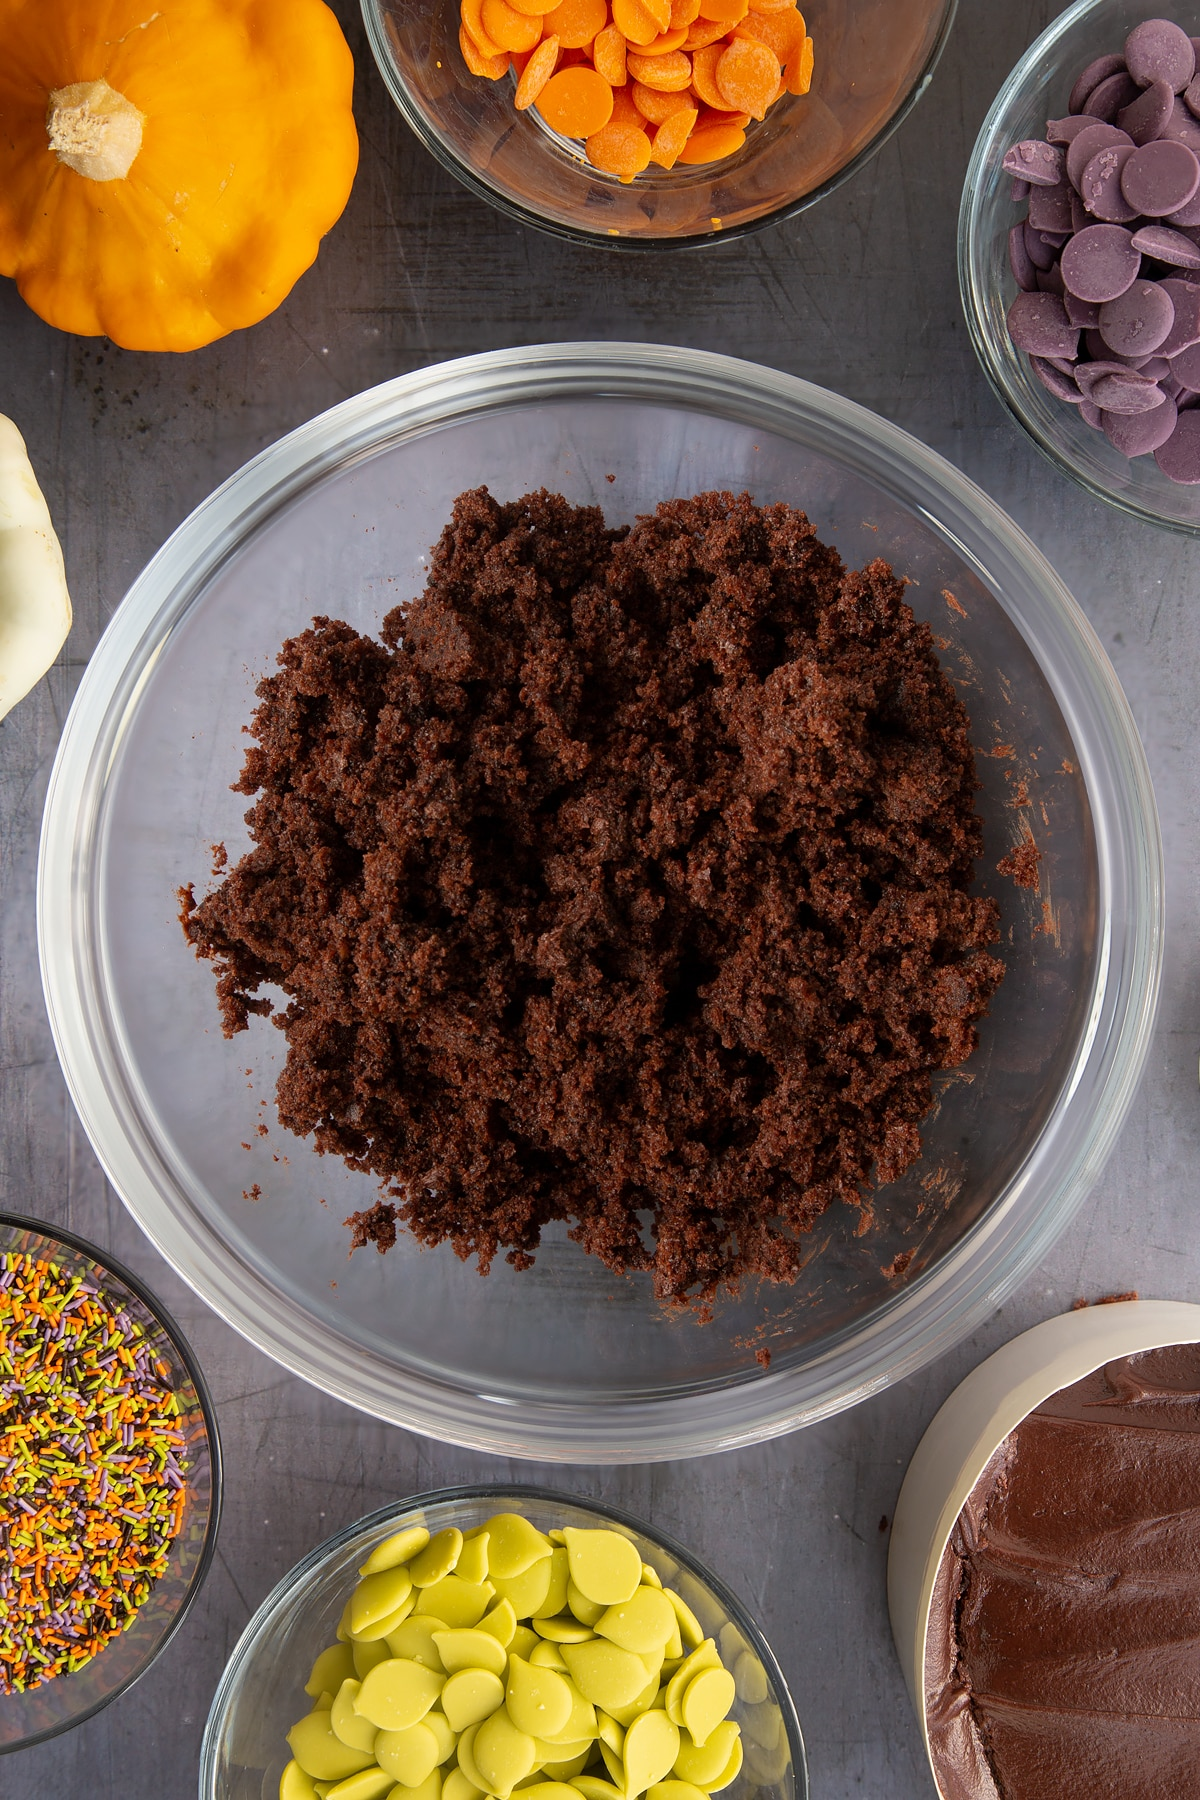 Chocolate fudge cake broken down in a bowl. Ingredients to make Halloween cake pops surround the bowl.